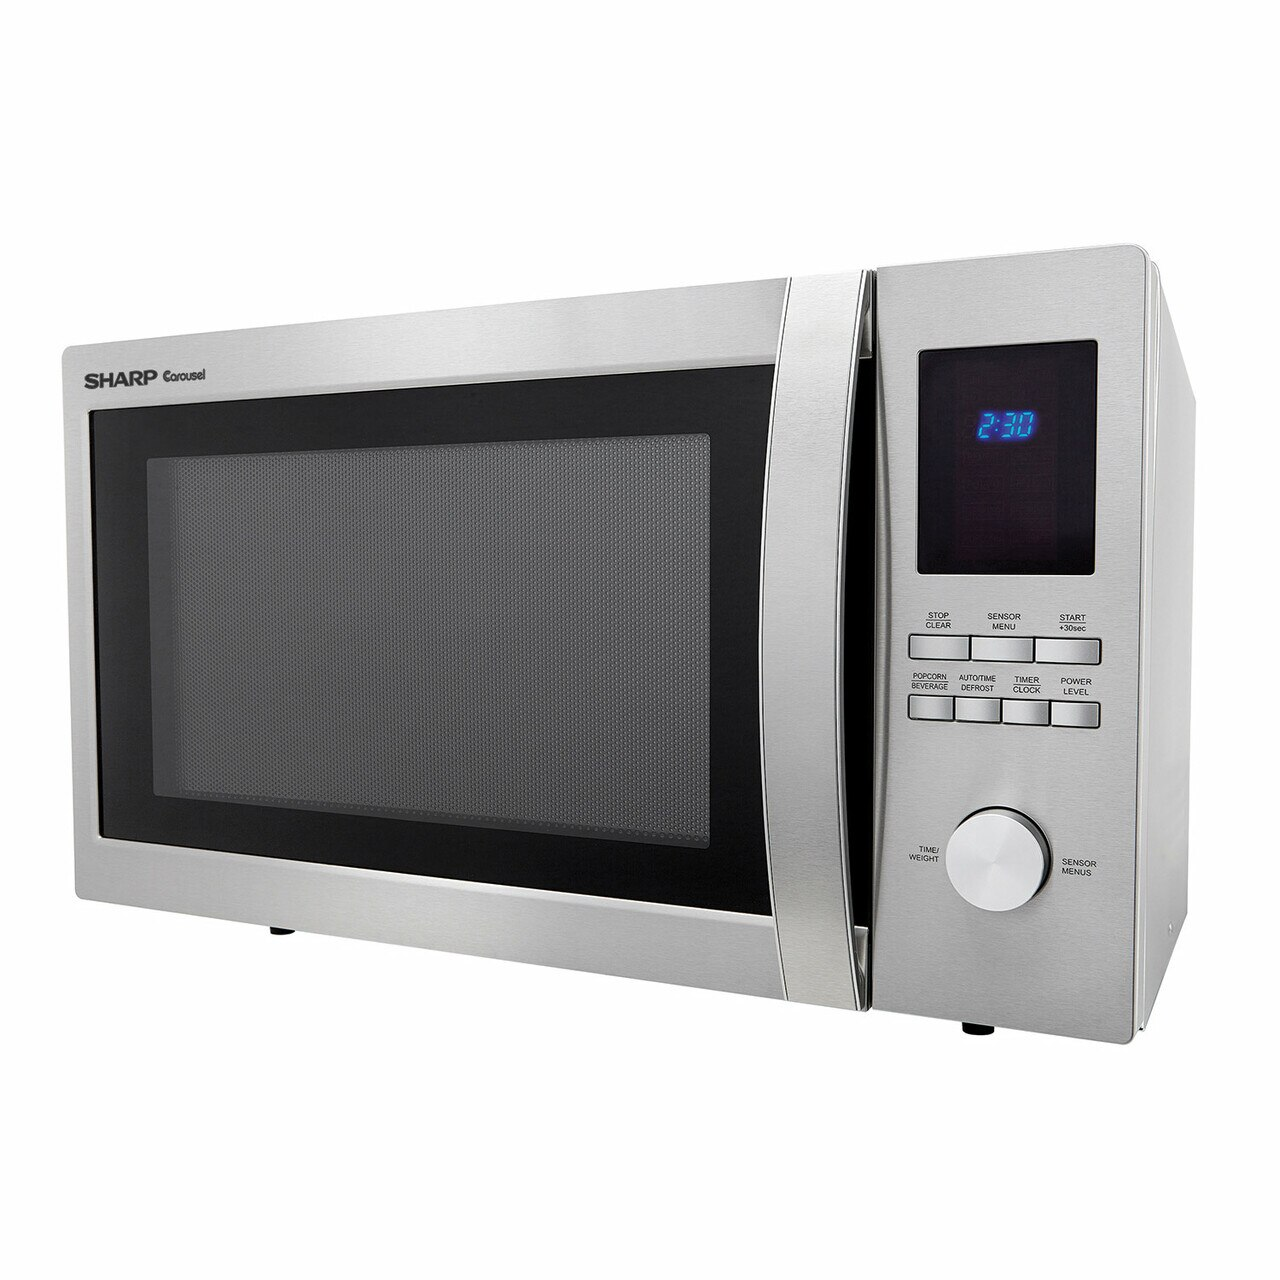 1.6 cu. ft. Sharp Stainless Steel Carousel Microwave (SMC1655BS) – left side view